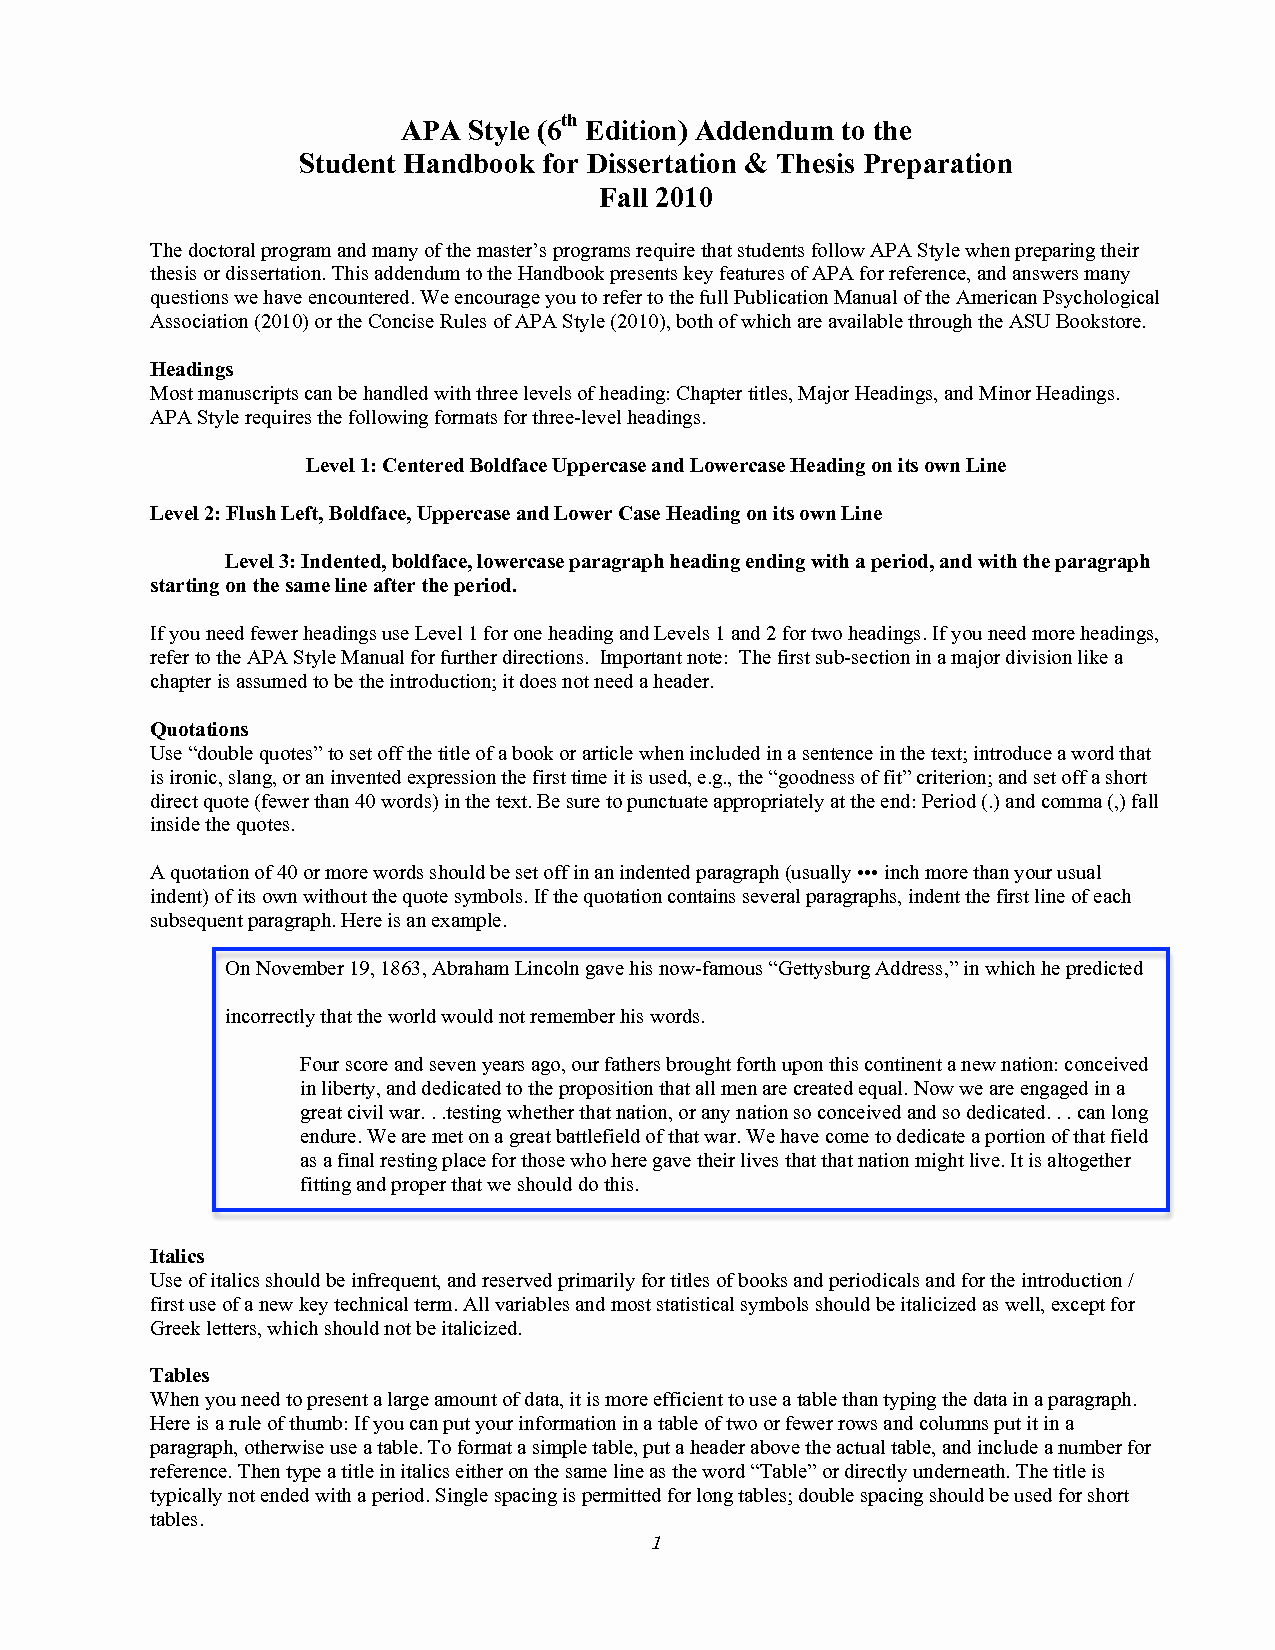 008 Apa Style Research Paper Template 6th Edition Format Best Of Sample Imposing Full